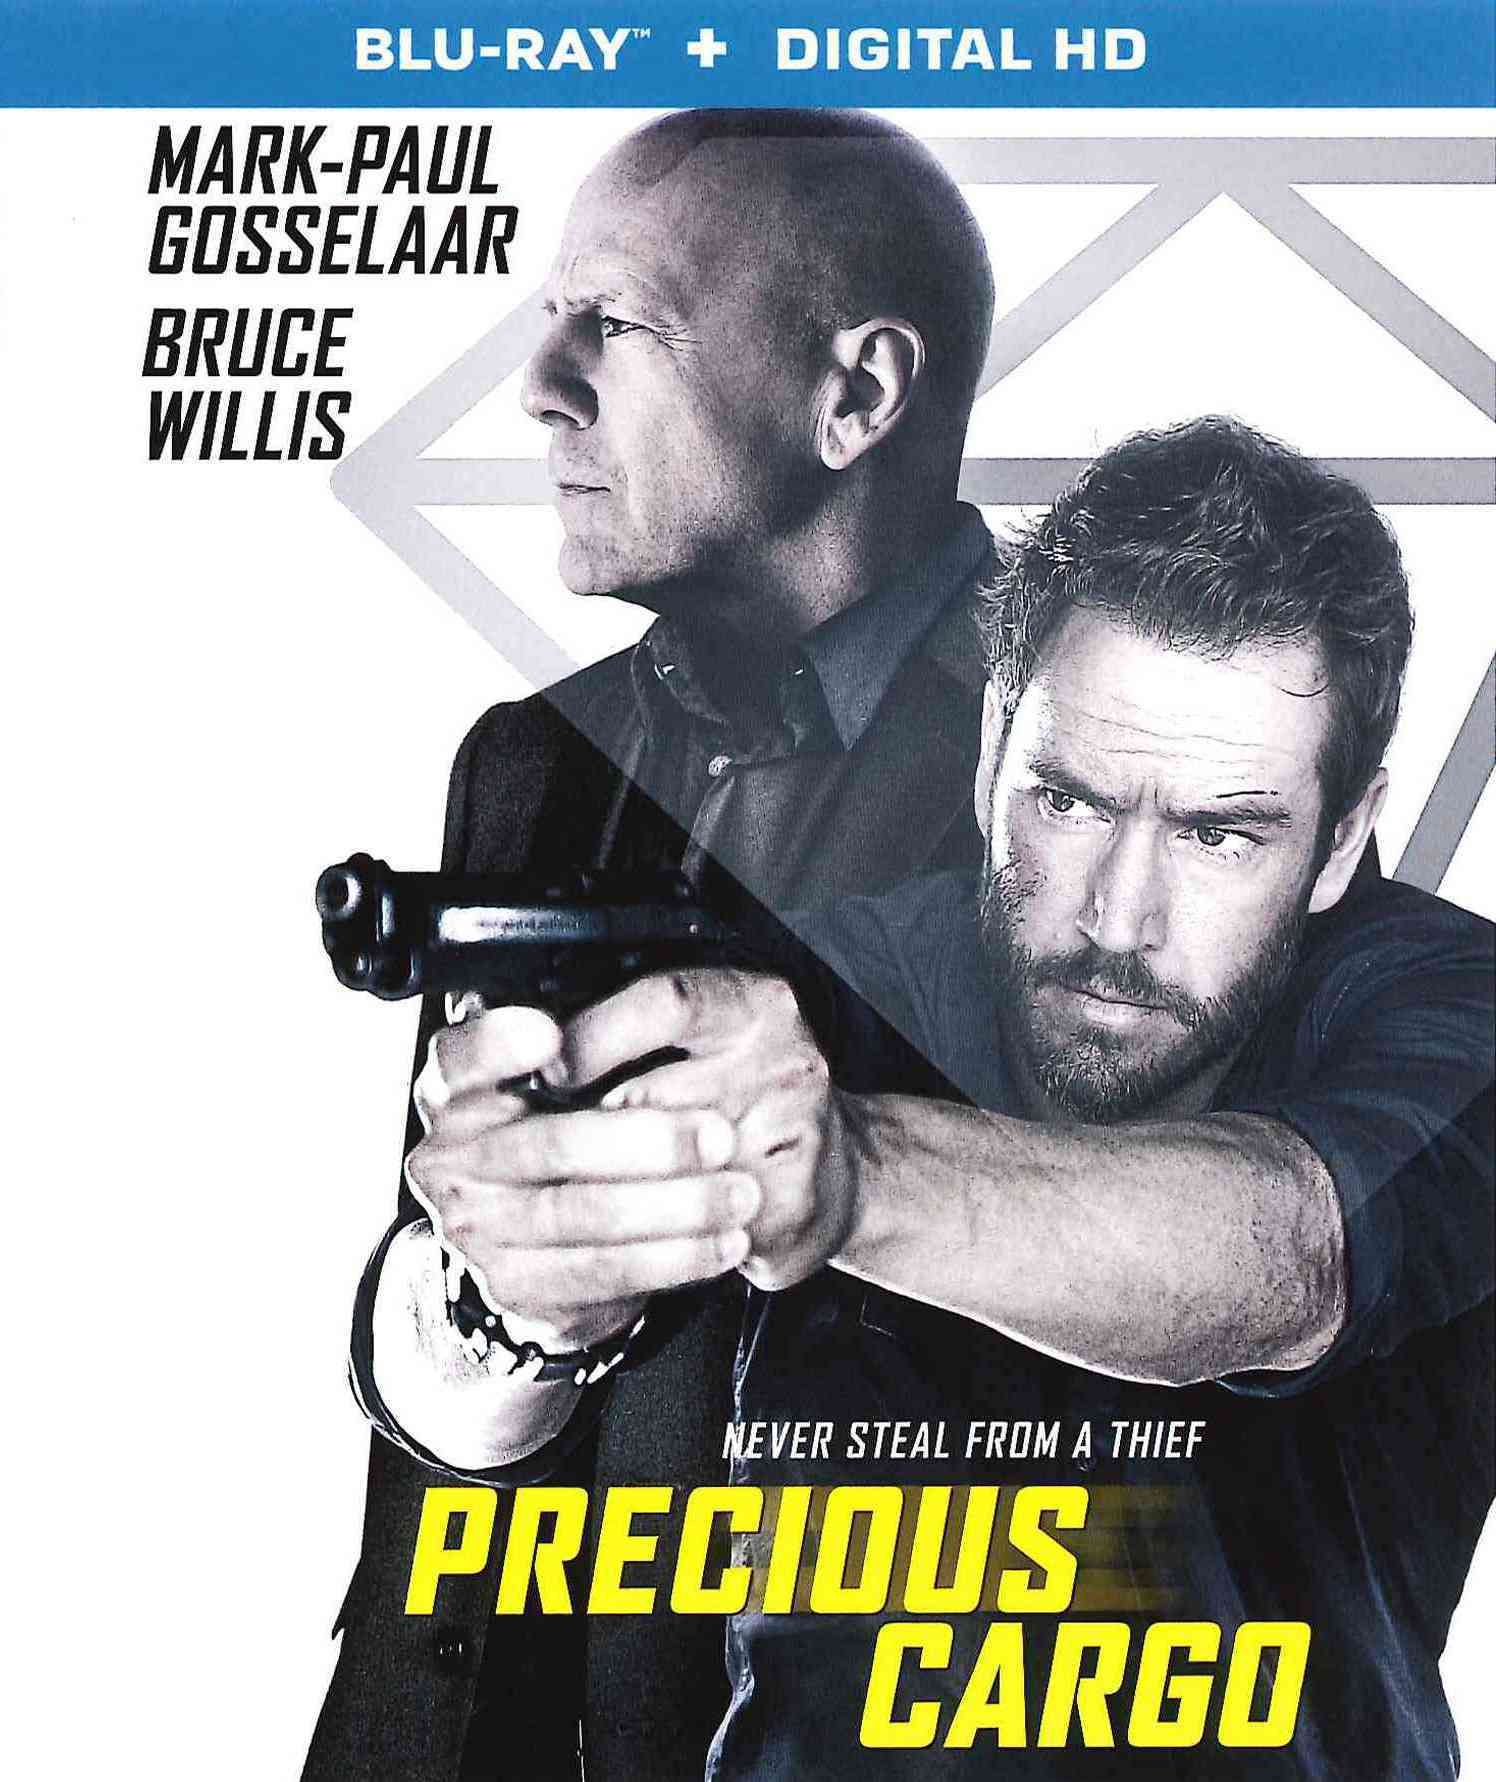 Precious Cargo Streaming Hd Movies Free Films Online Top